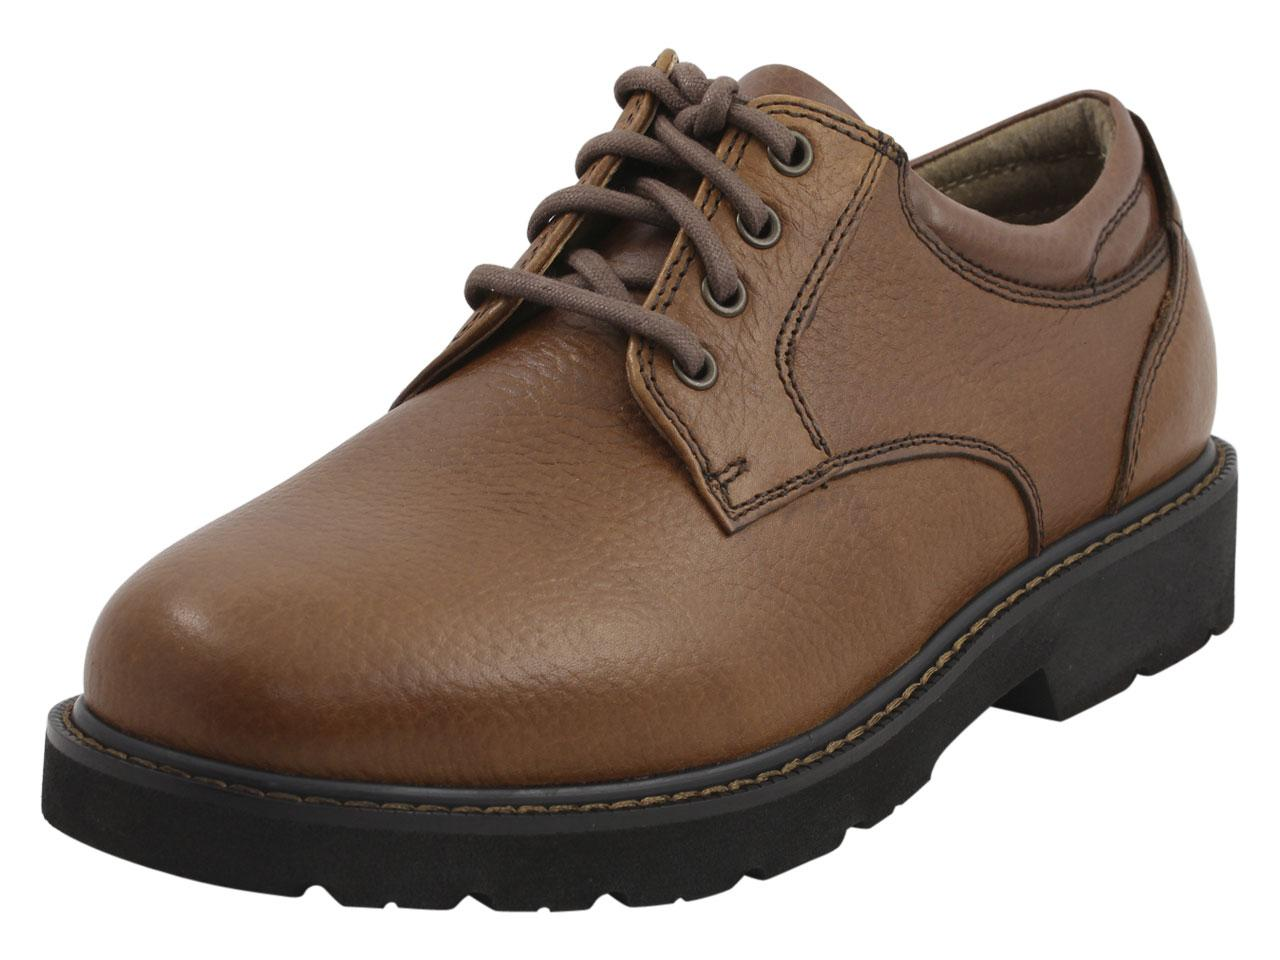 Image of Dockers Men's Shelter Water Repellent Oxfords Shoes - Brown - 13 D(M) US